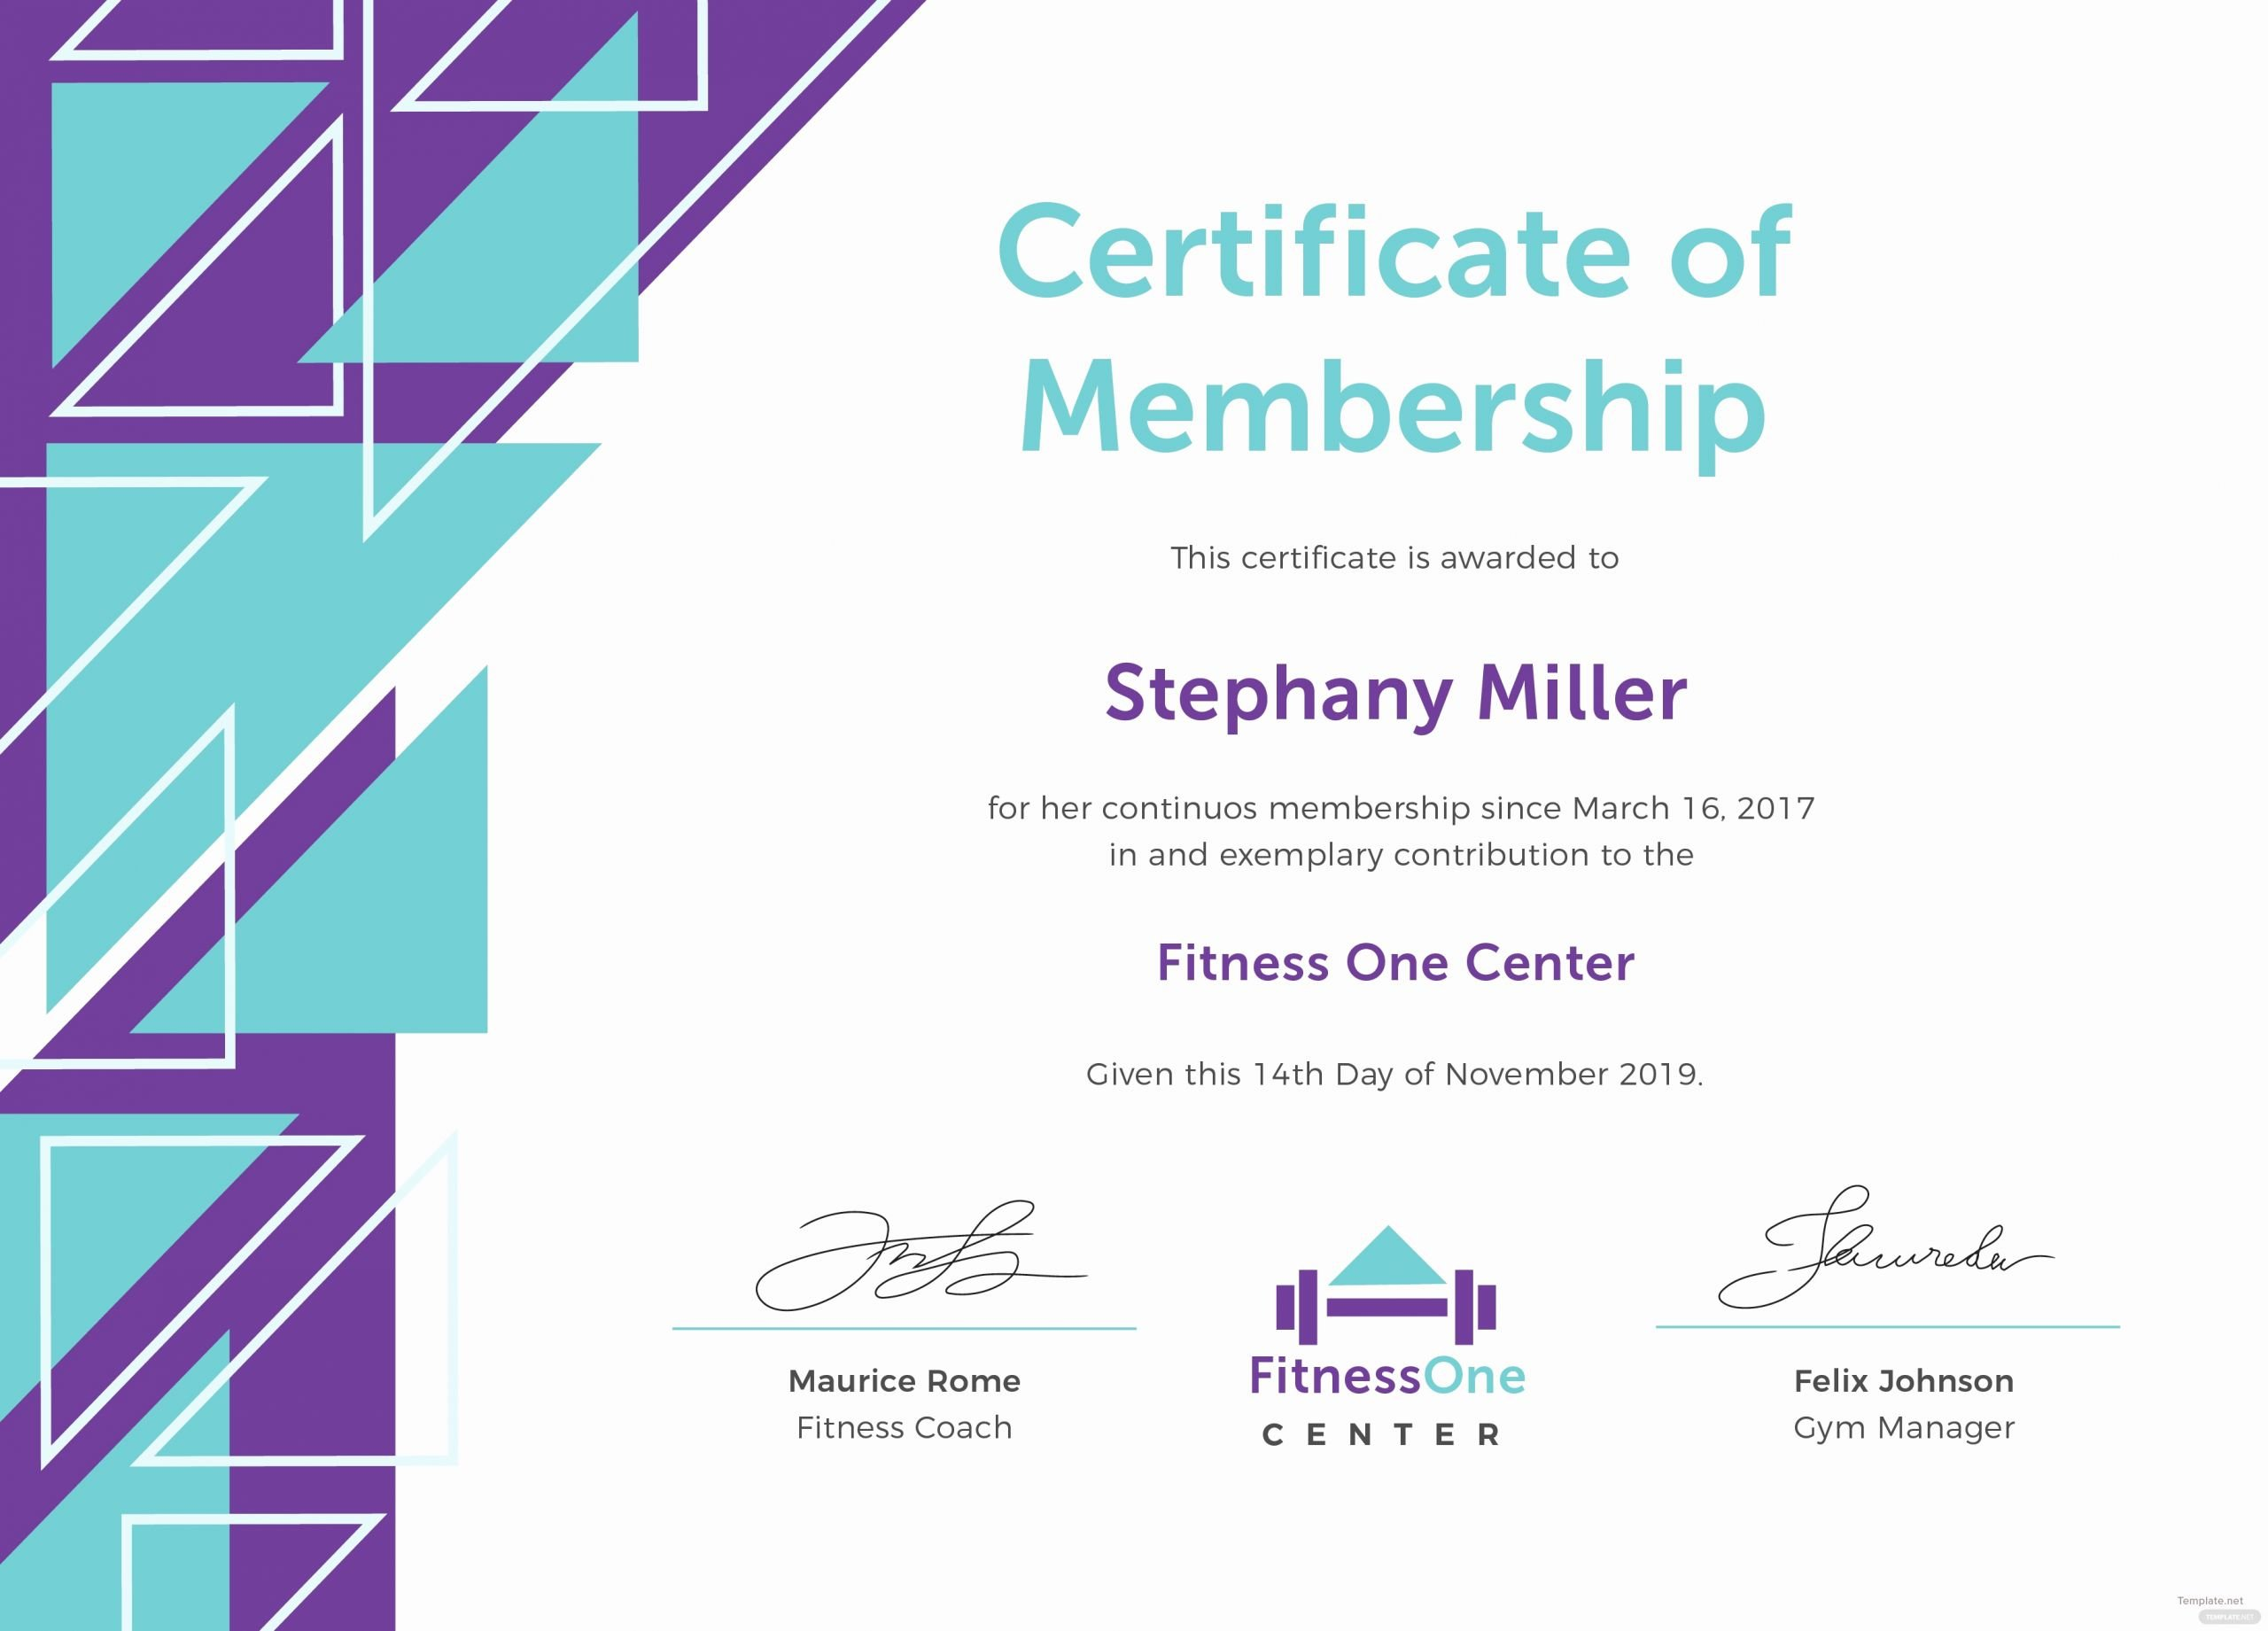 Honorary Member Certificate Template New Free Gym Membership Certificate Template In Adobe